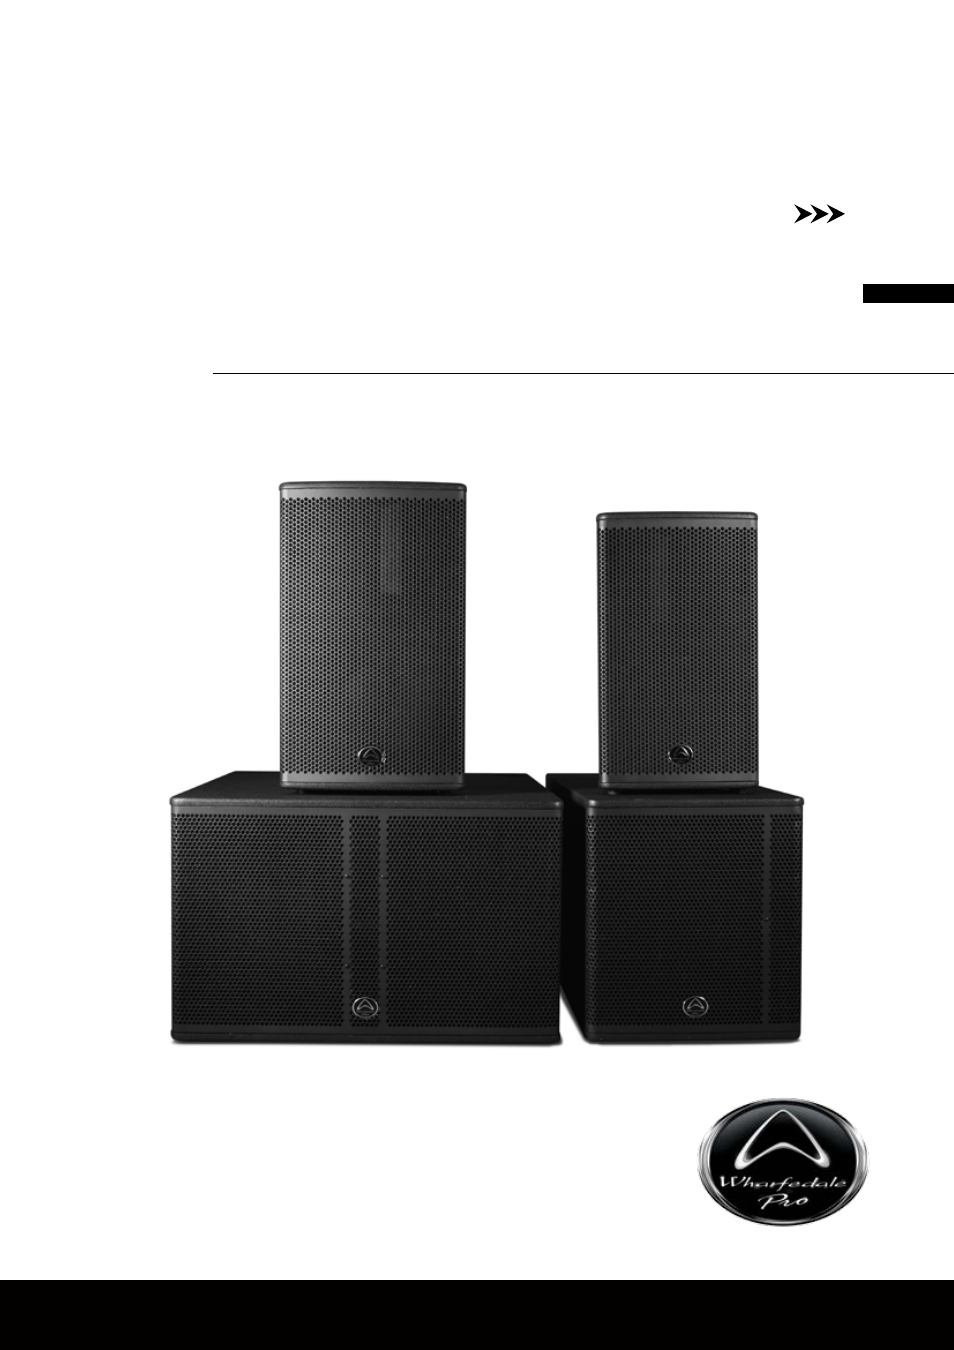 wharfedale pro focus 18s user manual 16 pages also for focus 15 rh manualsdir com wharfedale ics182 user manual wharfedale titan 12d user manual